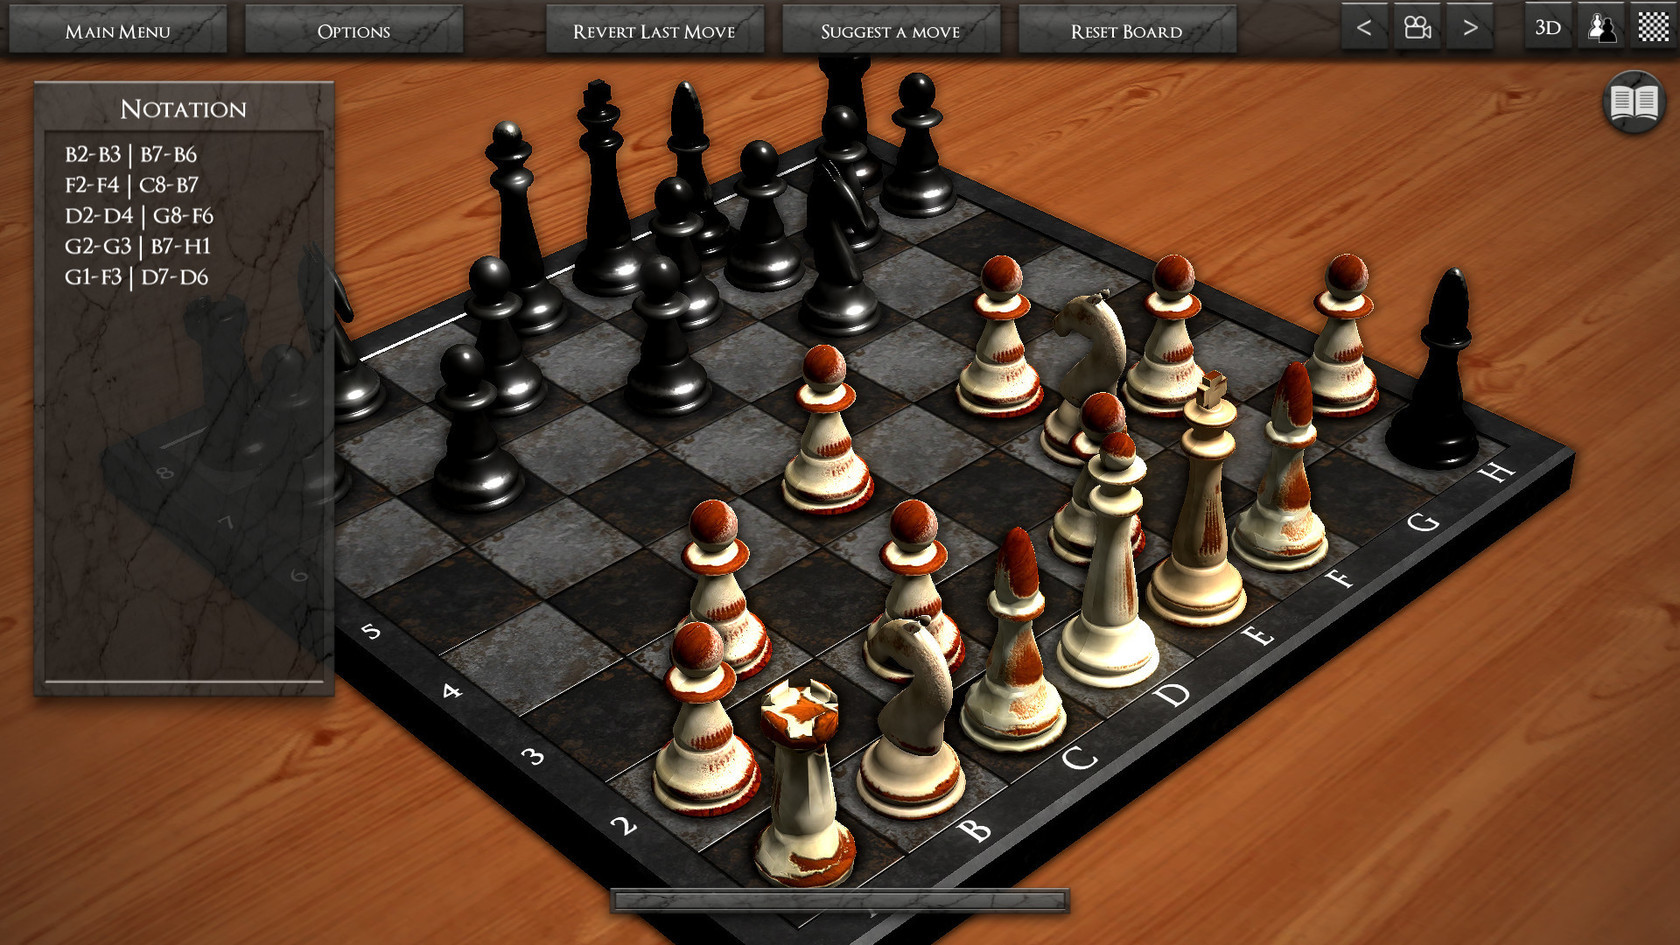 how to watch friend chess game on chess.com